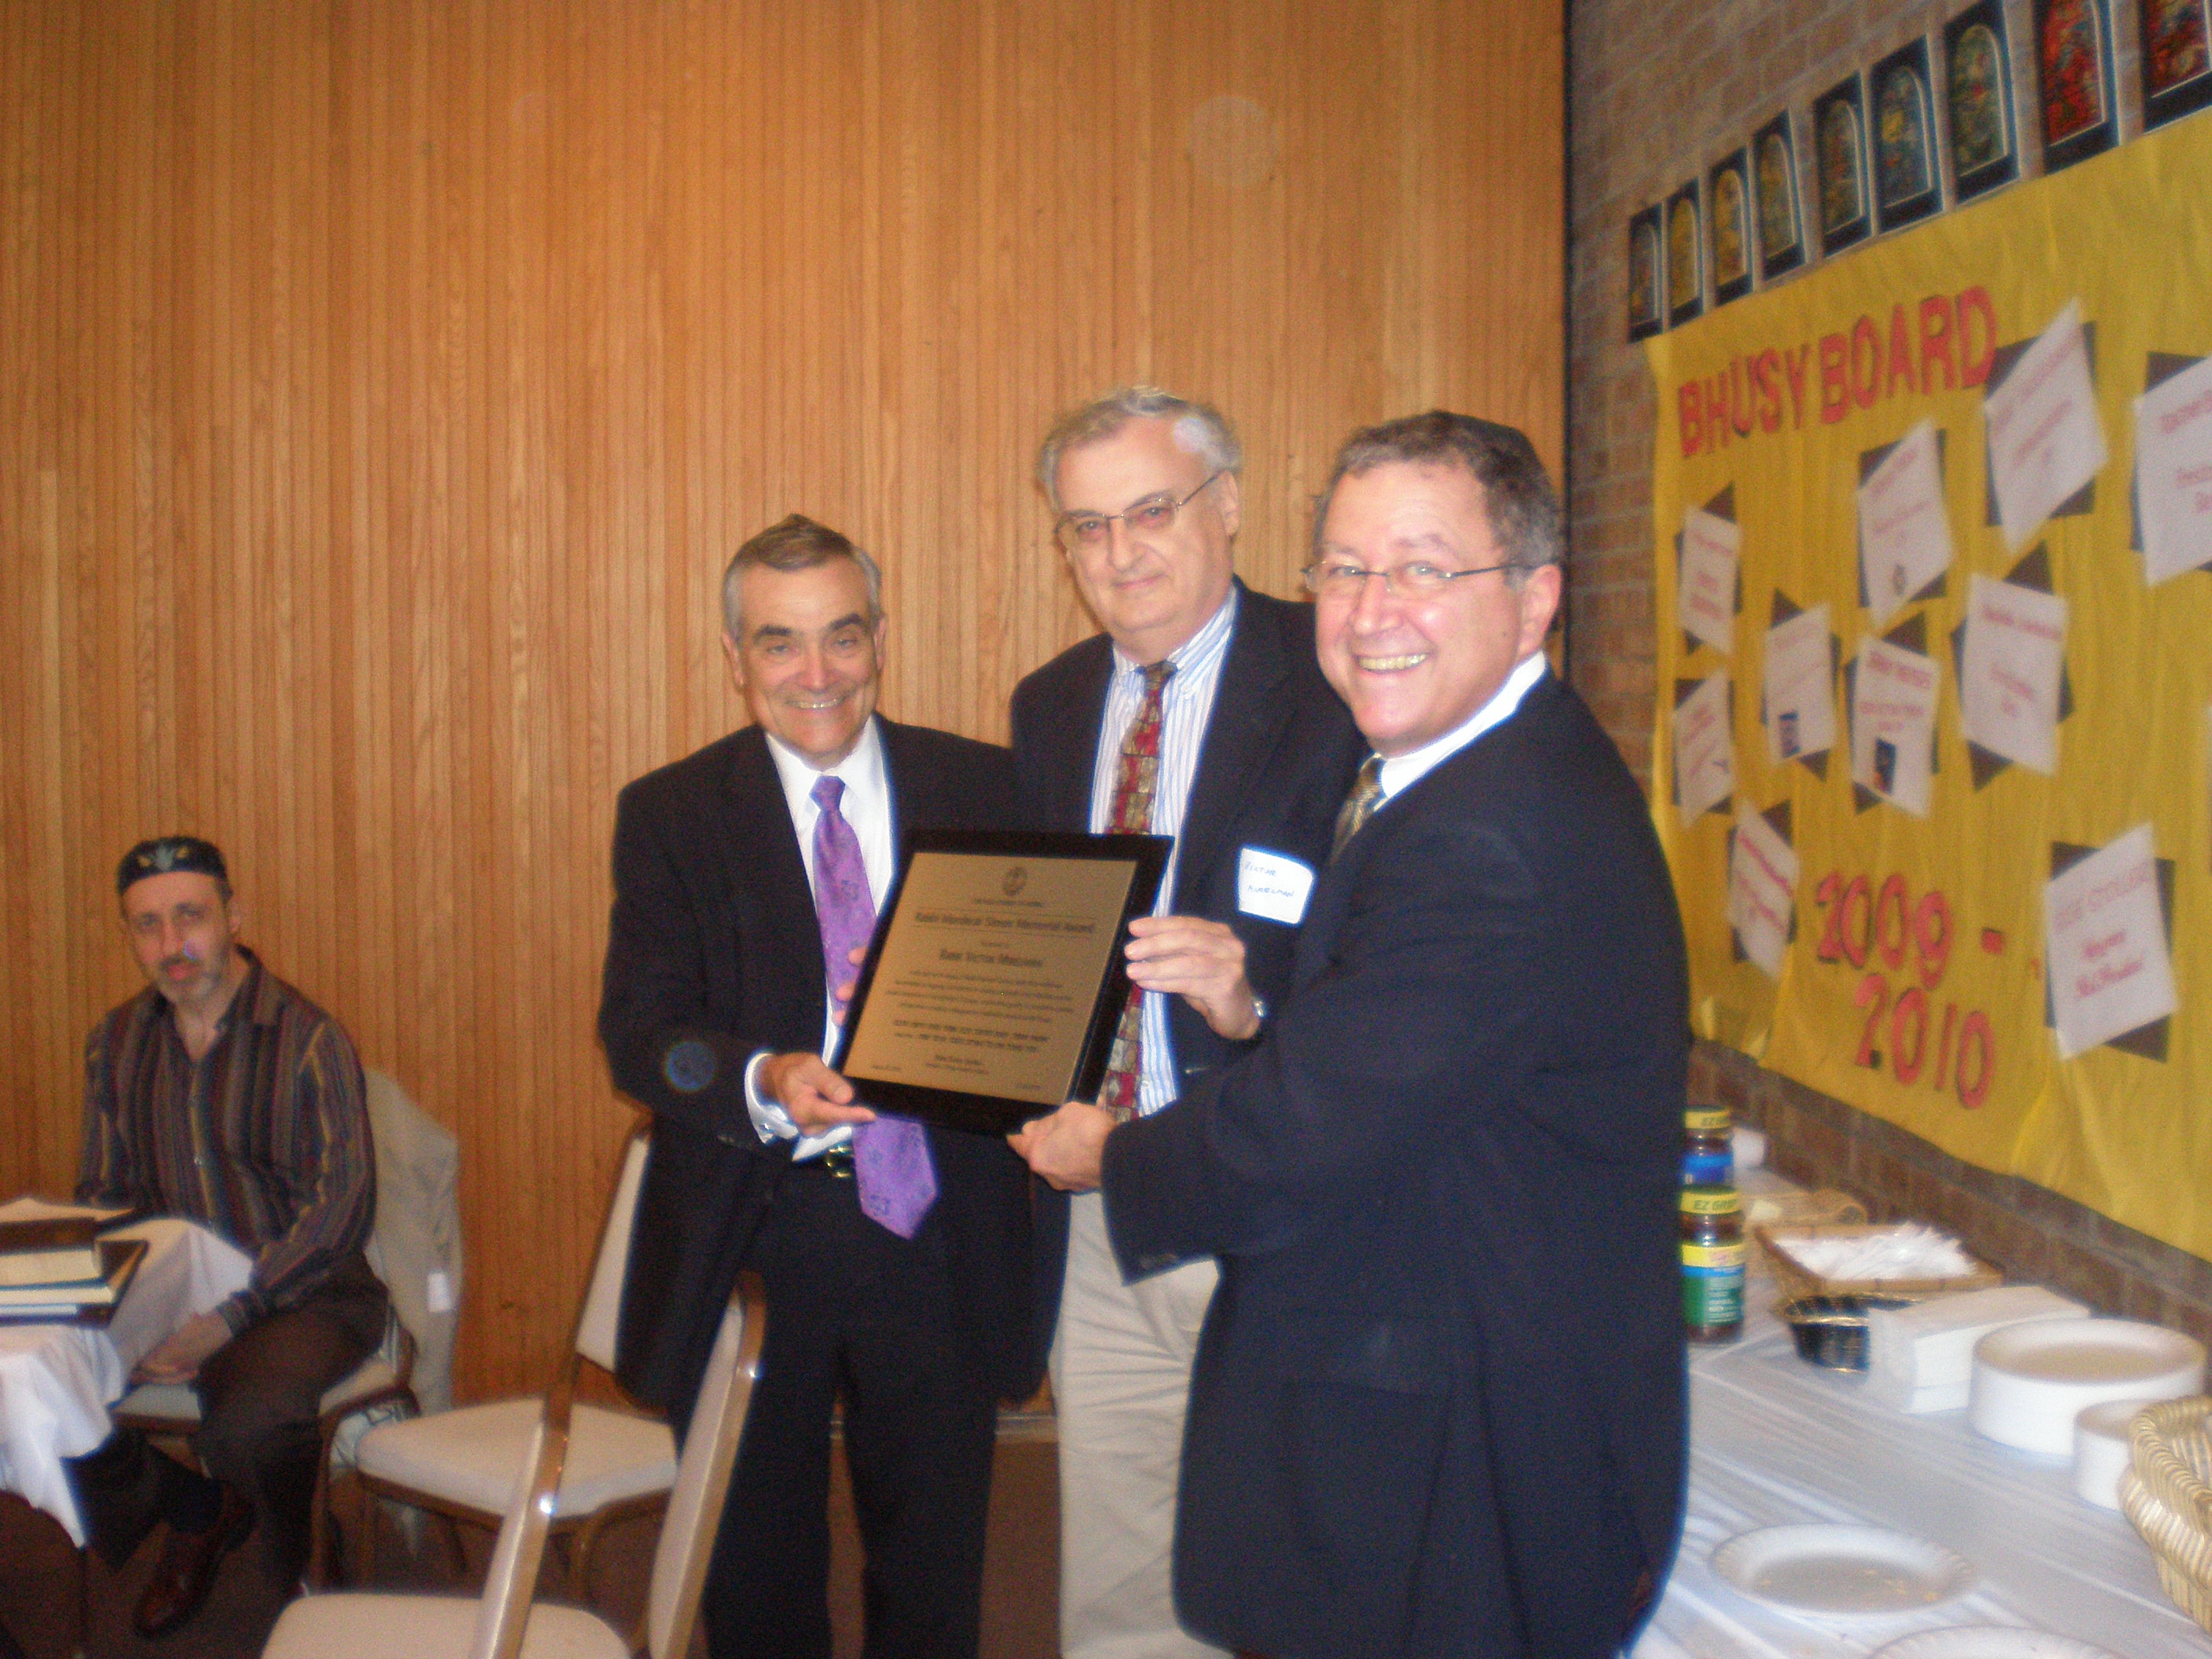 Mordy Simon Award 2010